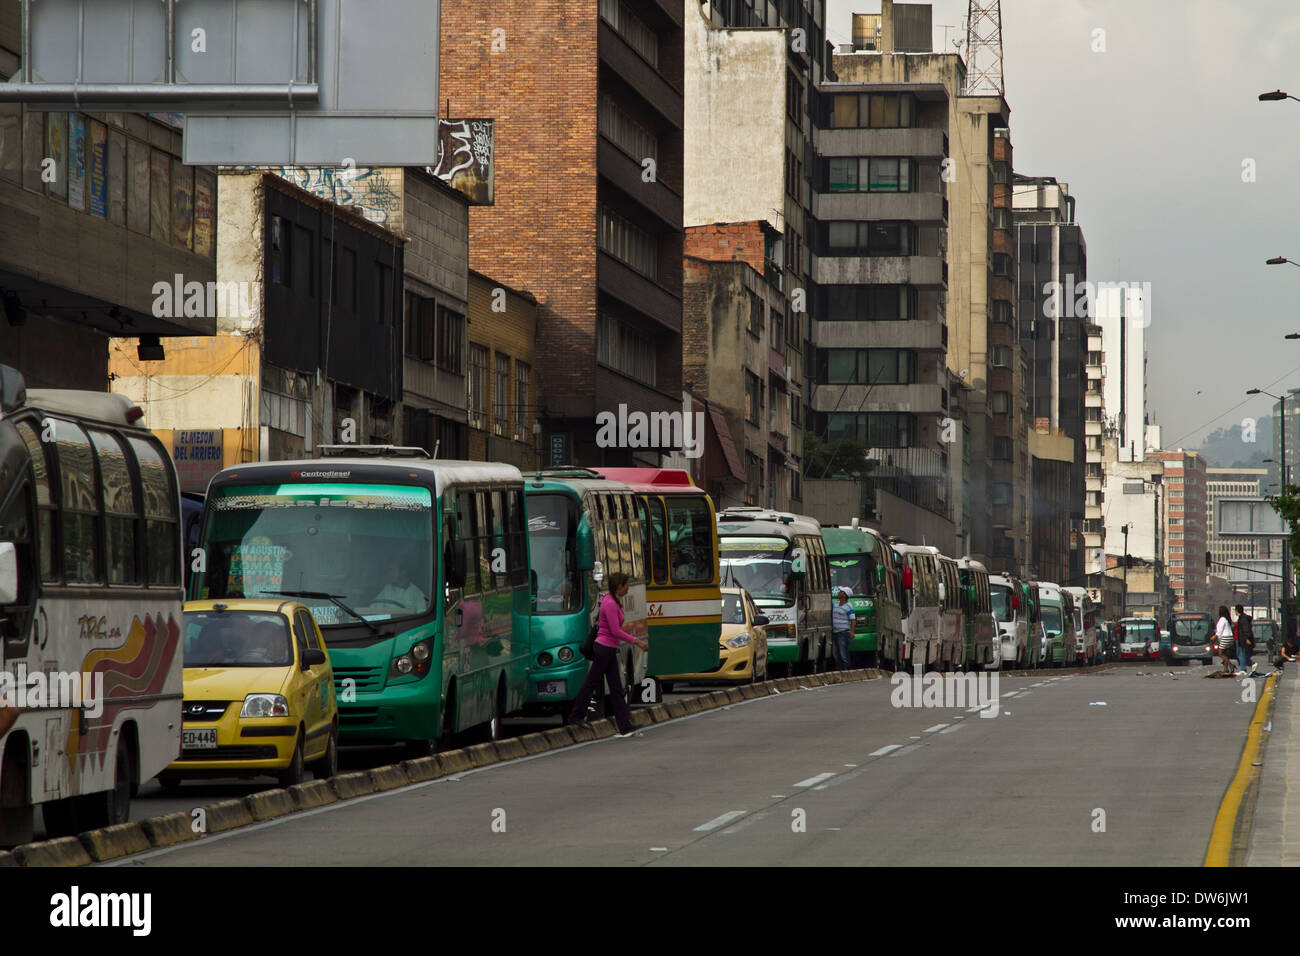 Afternoon Rush hour 10th ave Boggota, Colombia - Stock Image